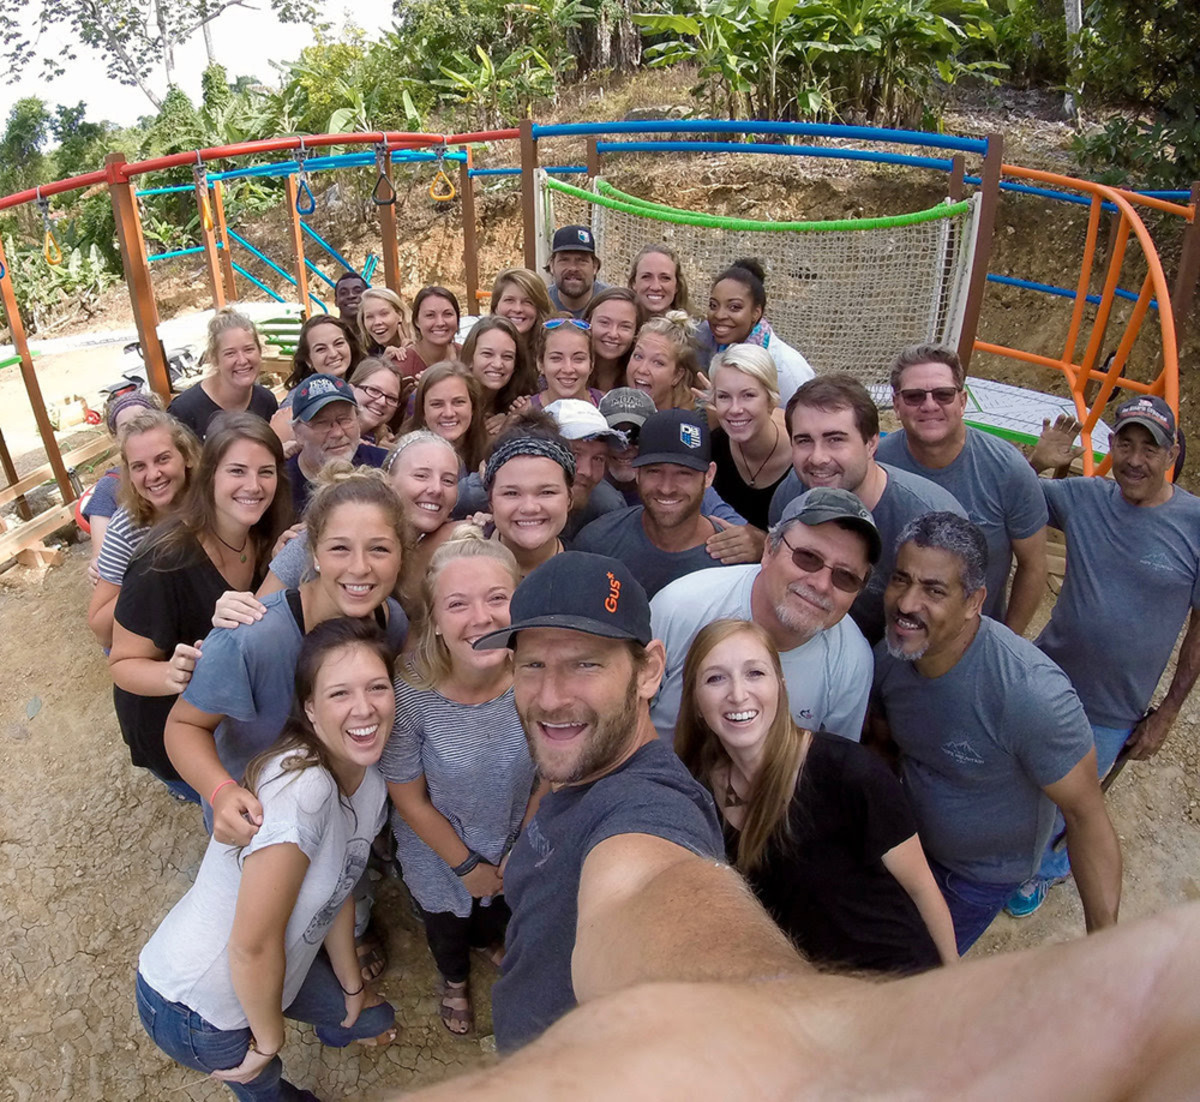 Nautique employees helped construct a playground at a mission camp in the Dominican Republic.